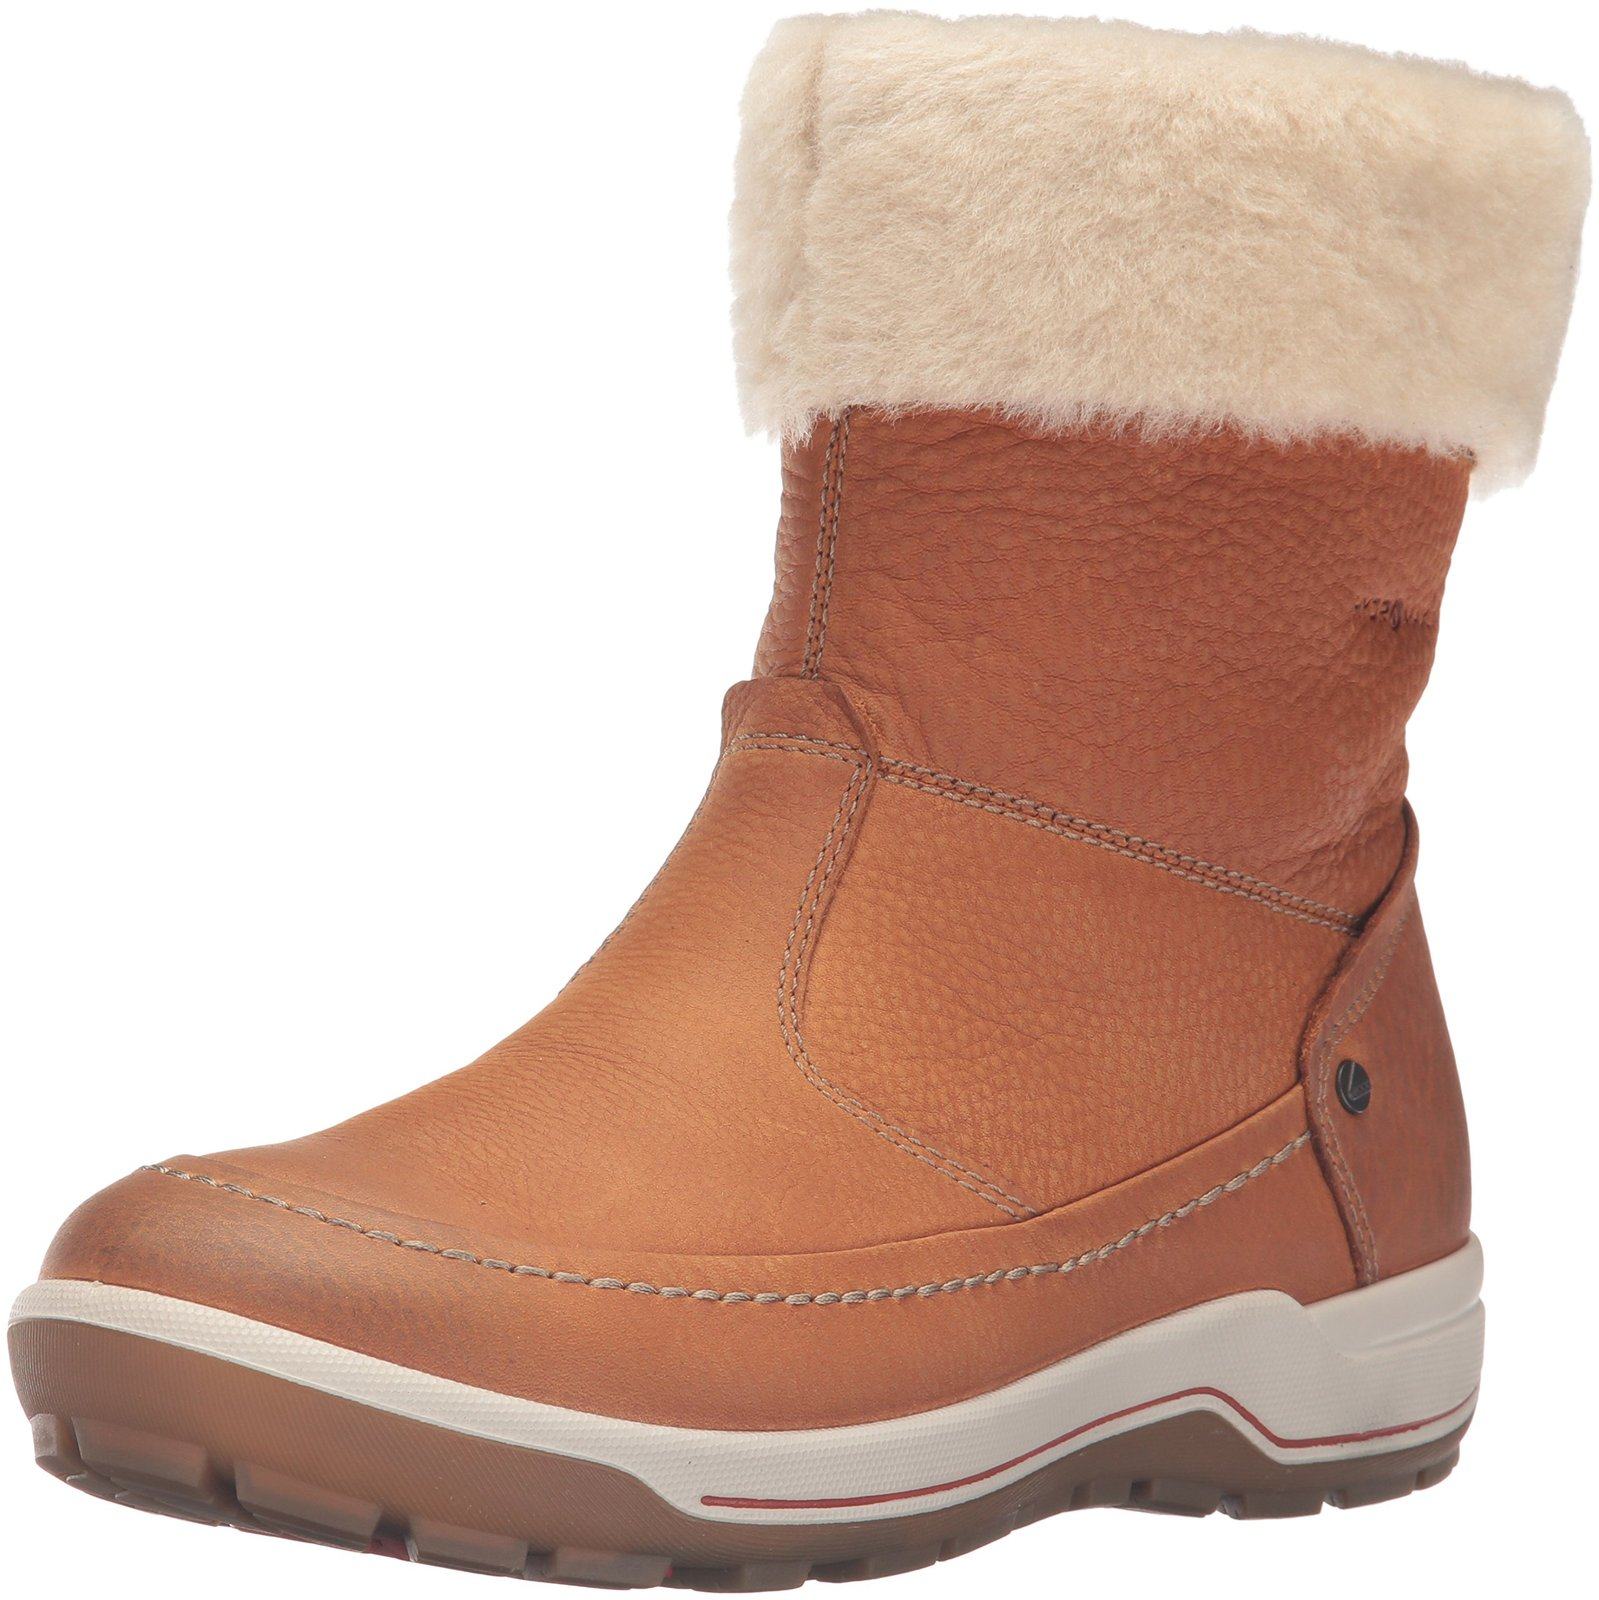 Primary image for ECCO Women's Trace W Snow Boot, Amber/Sand, 38 EU/7-7.5 M US